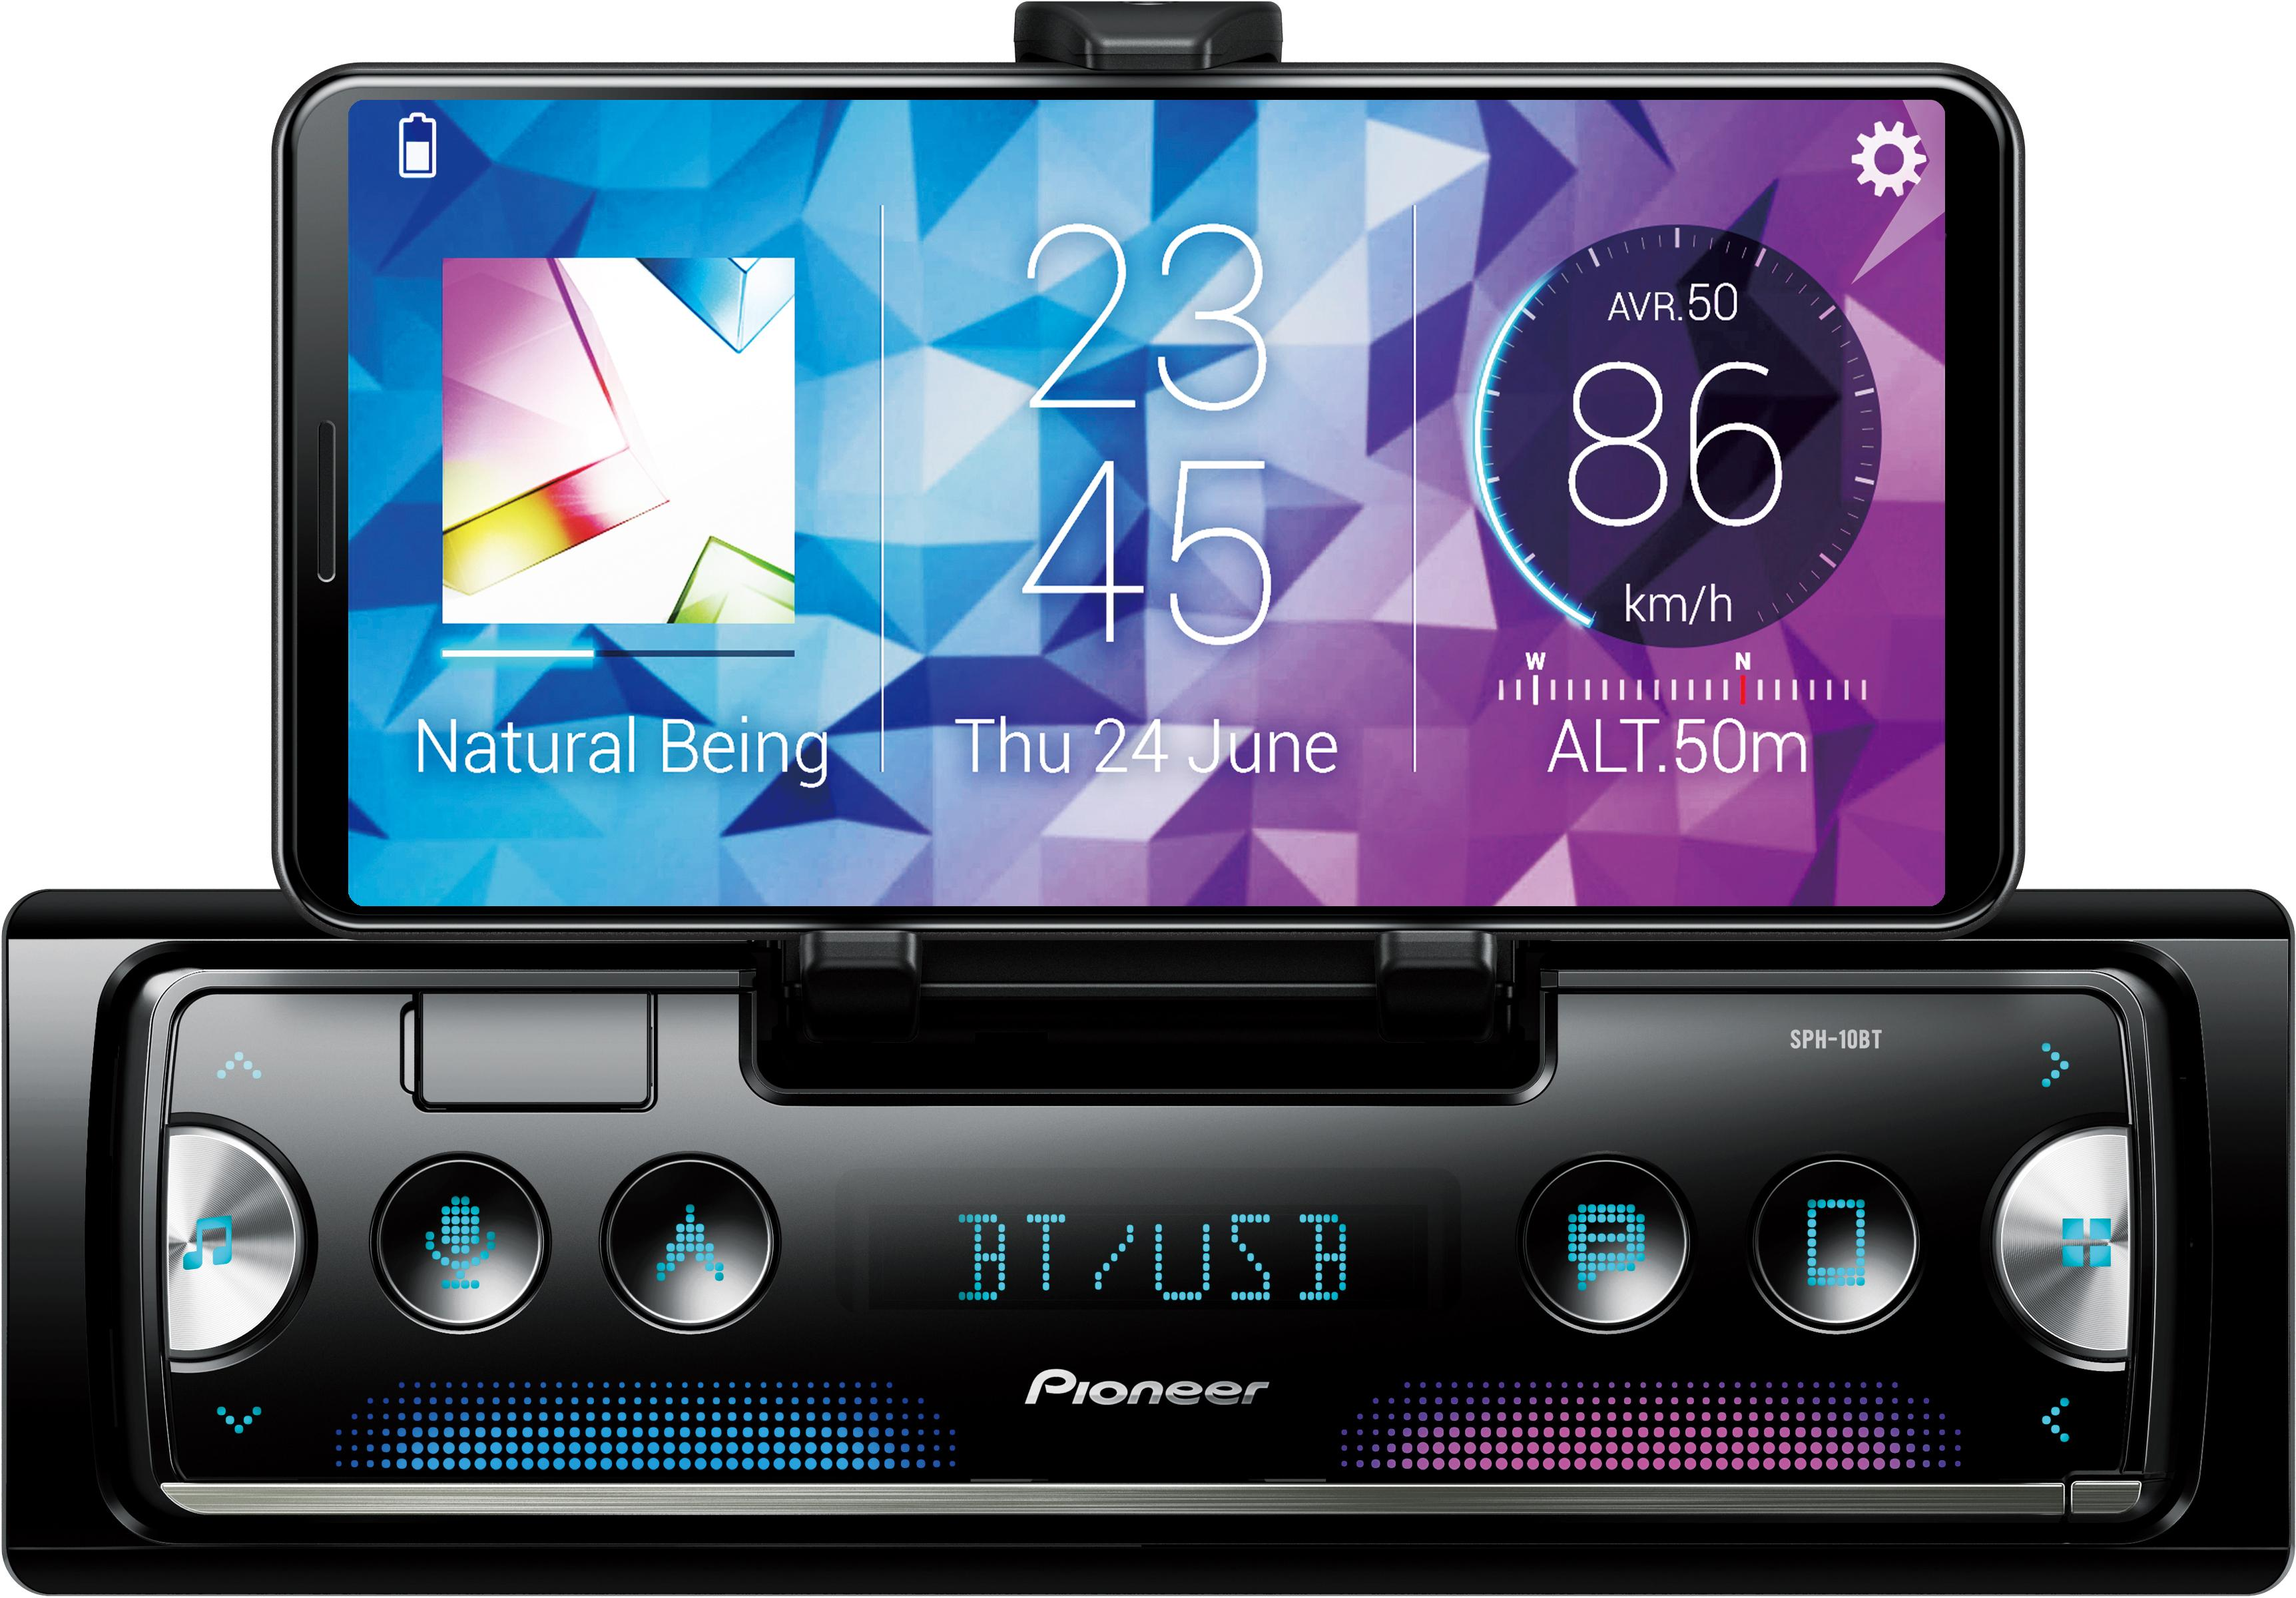 Pioneer-SPH-10BT-Smartphone-Ipod-Compatible-Receiver-USB-Bluetooth-Car-Audio